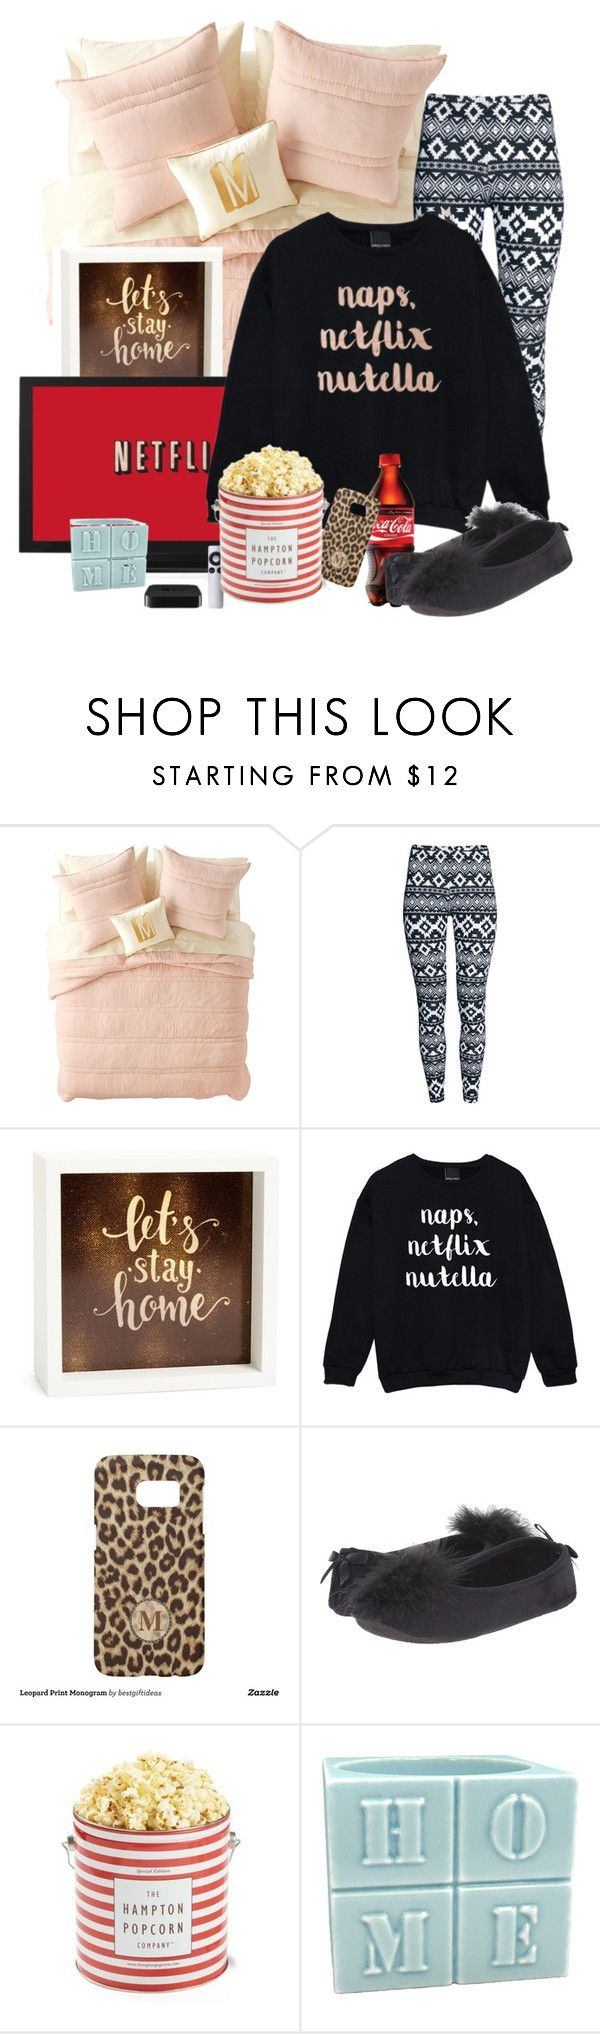 """""""Netflix & Sleep"""" by hope-houston on Polyvore featuring Nordstrom Rack, H&M, LightBoxArts, Samsung and Patricia Green"""